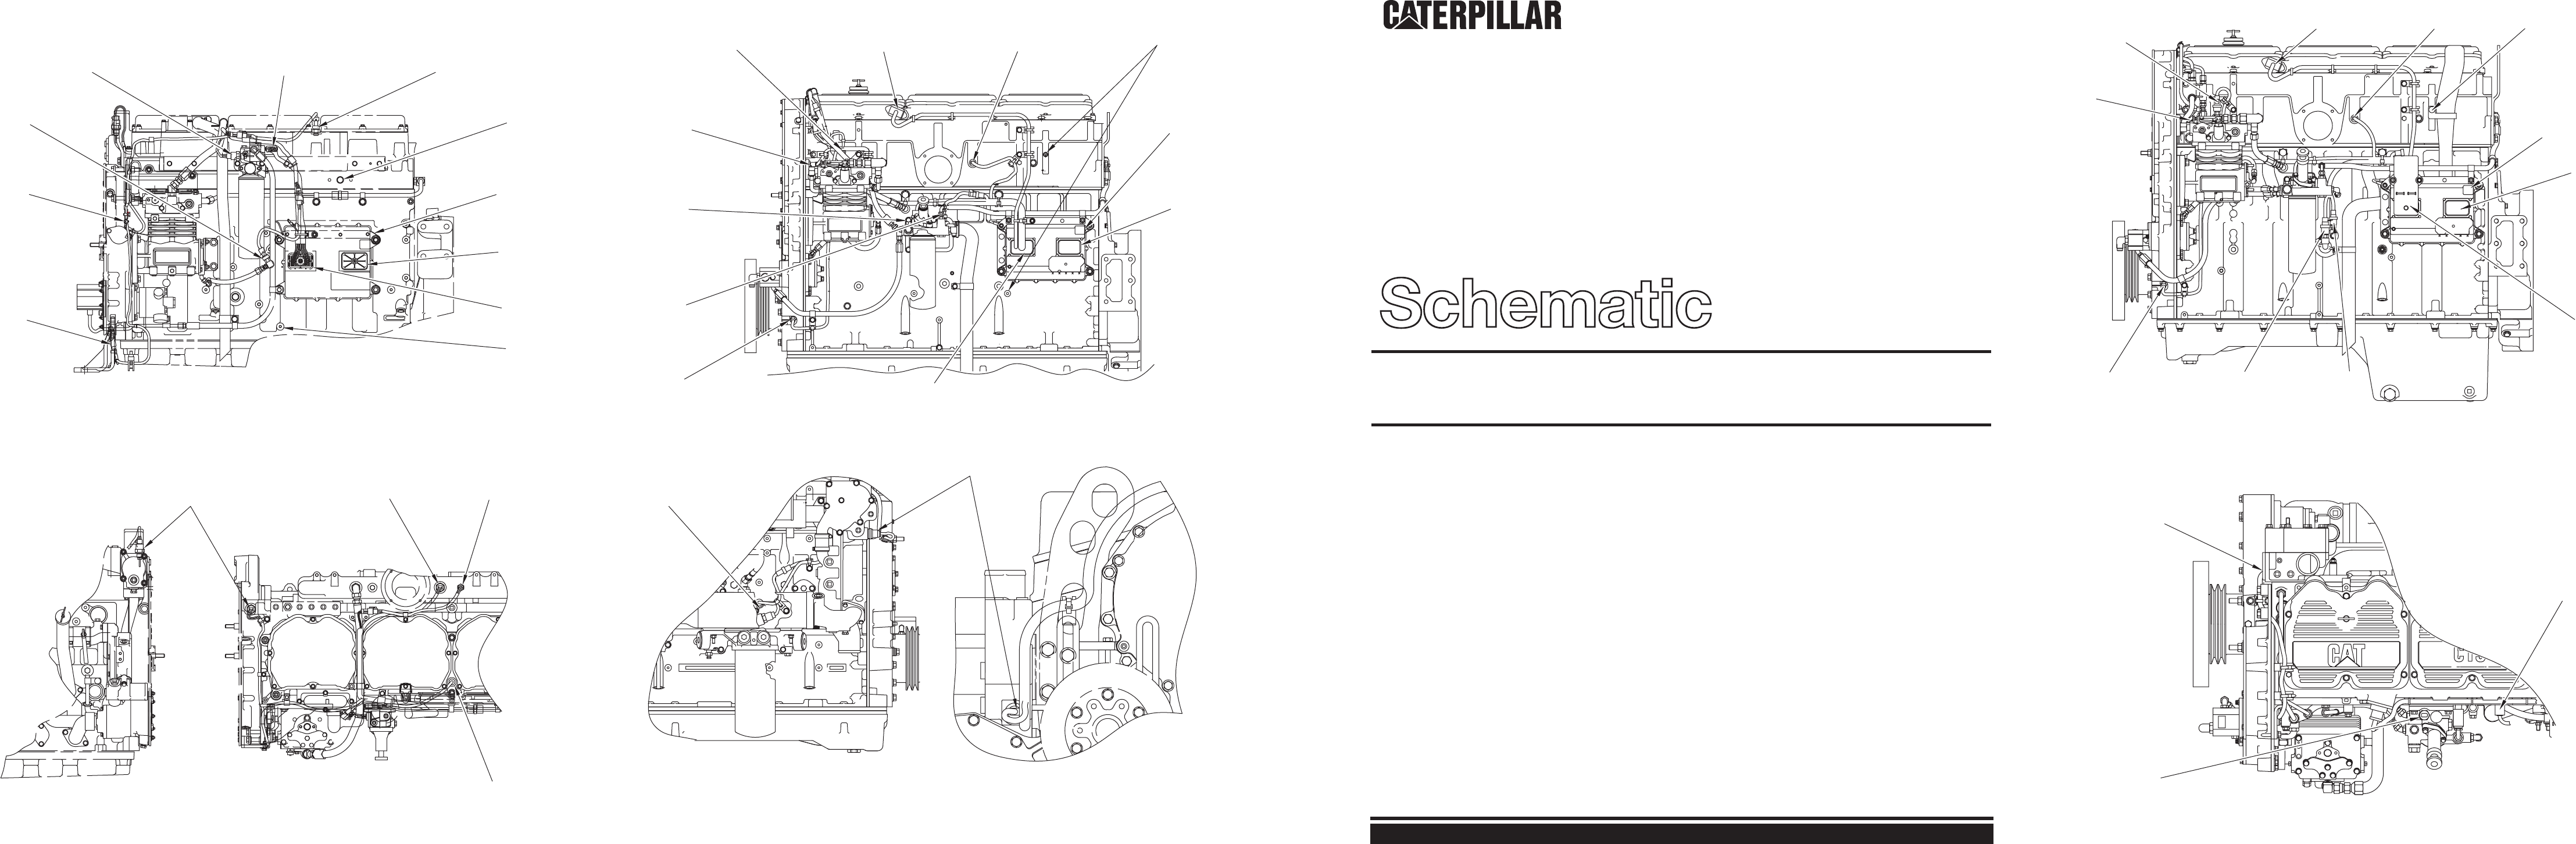 C-10, C-12, 3406E, C-15 & C-16 TRUCK ENGINE ELECTRICAL SYSTEM SCHEMATIC |  CAT Machines Electrical SchematicCAT Machines Electrical Schematic